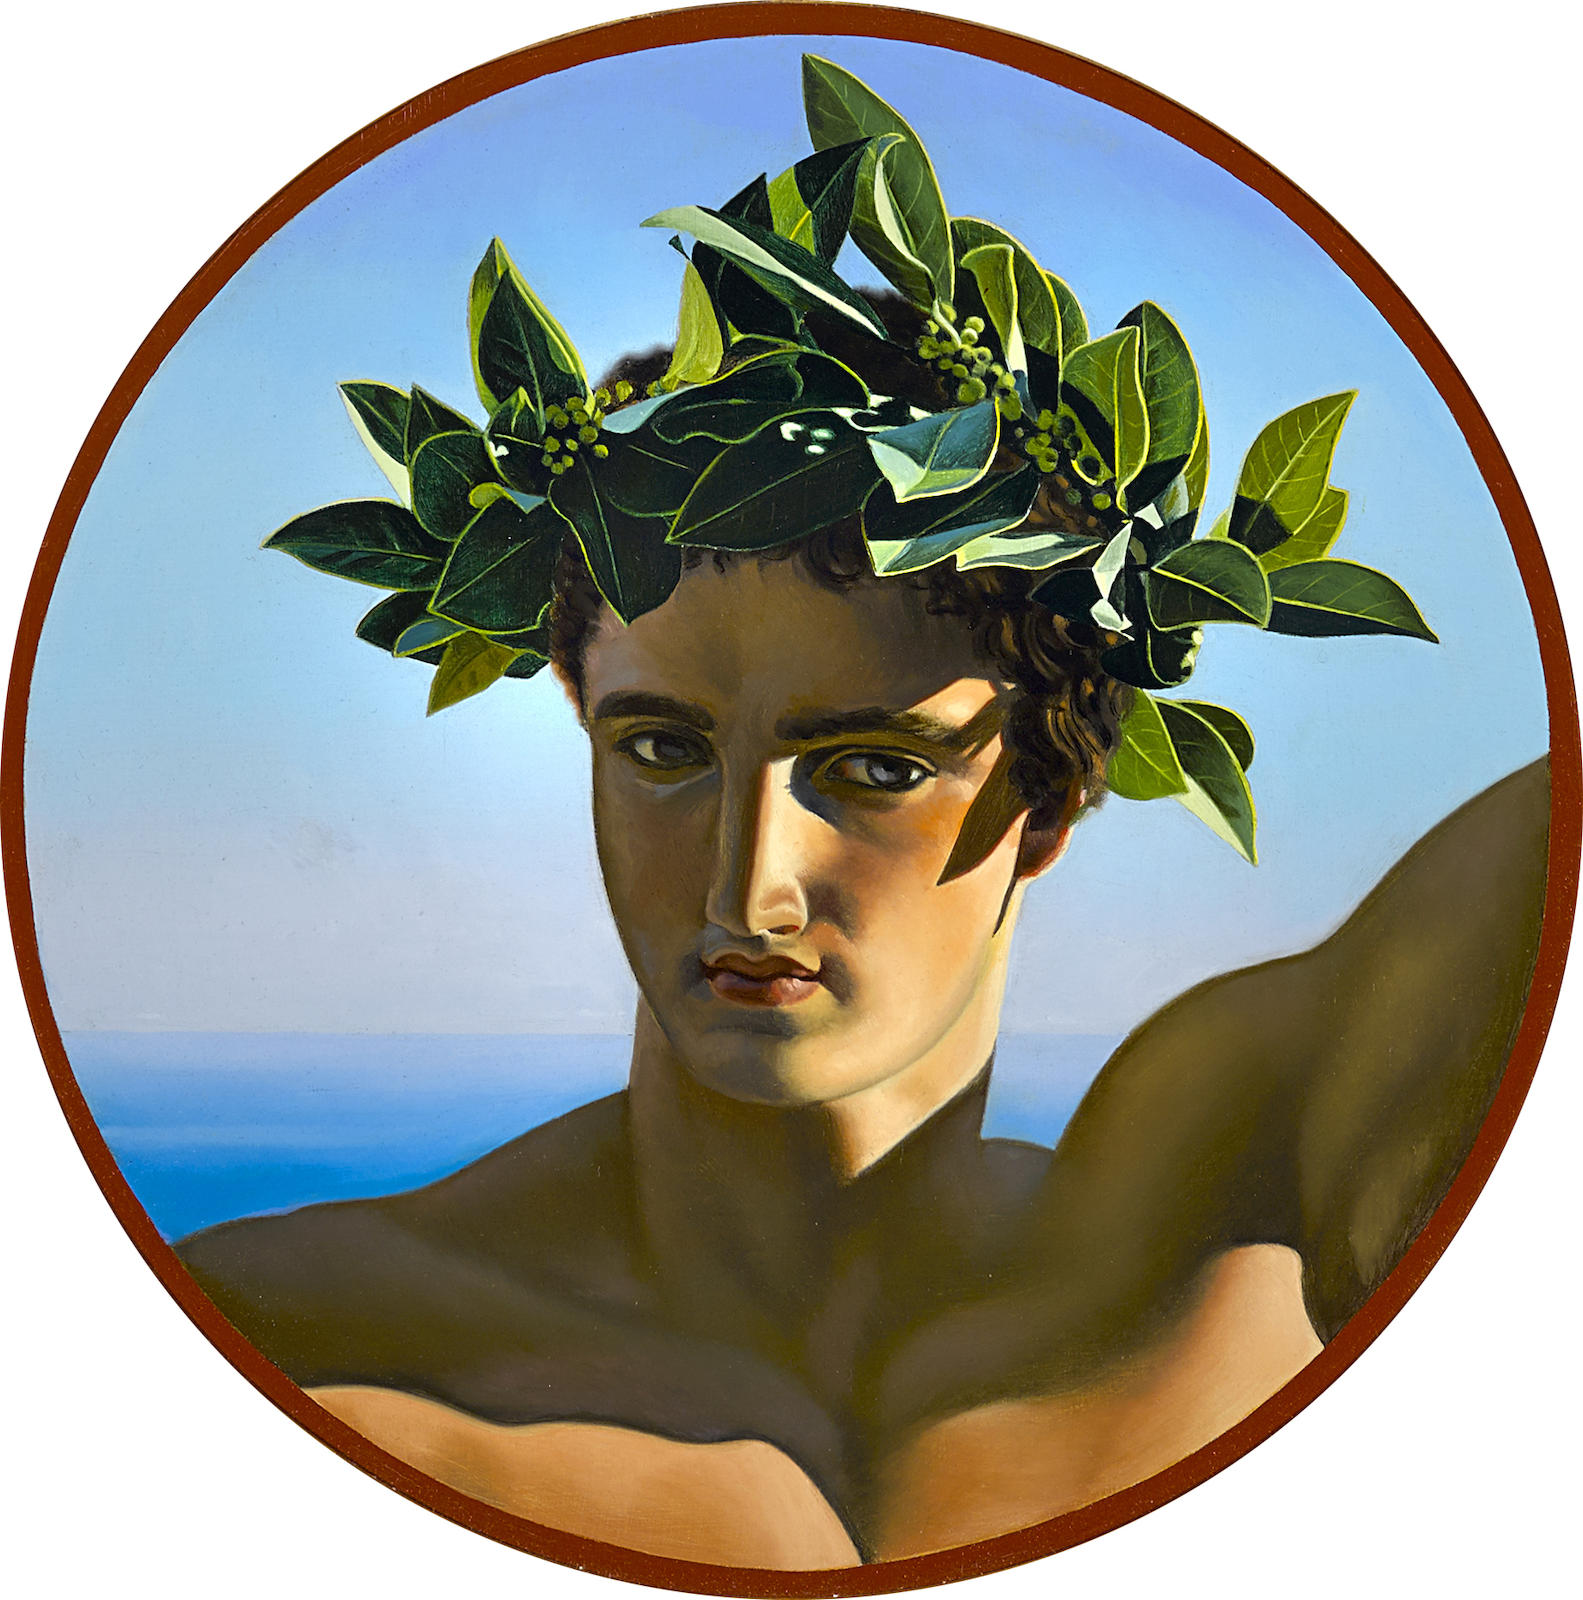 David Ligare-Study of a Youth Wearing a Champion's Laurel Wreath-1984